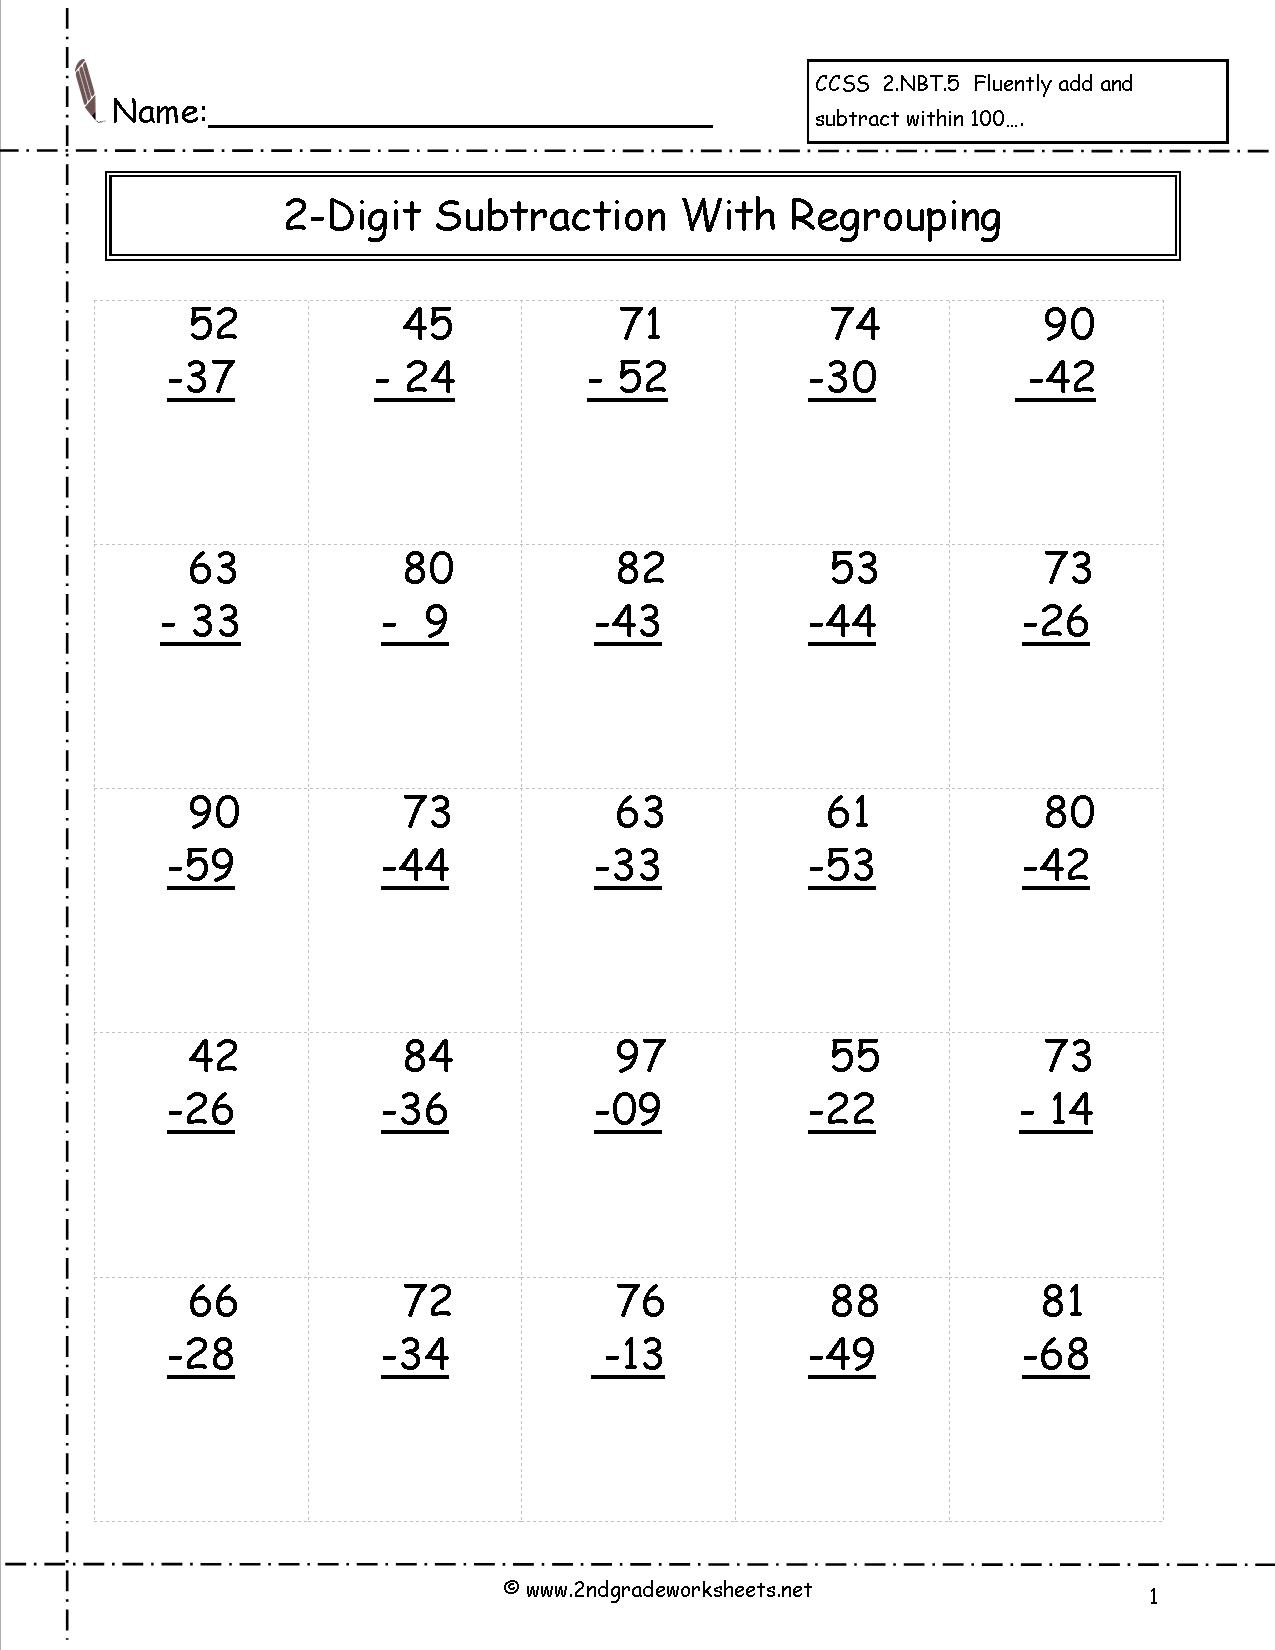 12 Best Images Of Numbers Adding Up To 10 Worksheets